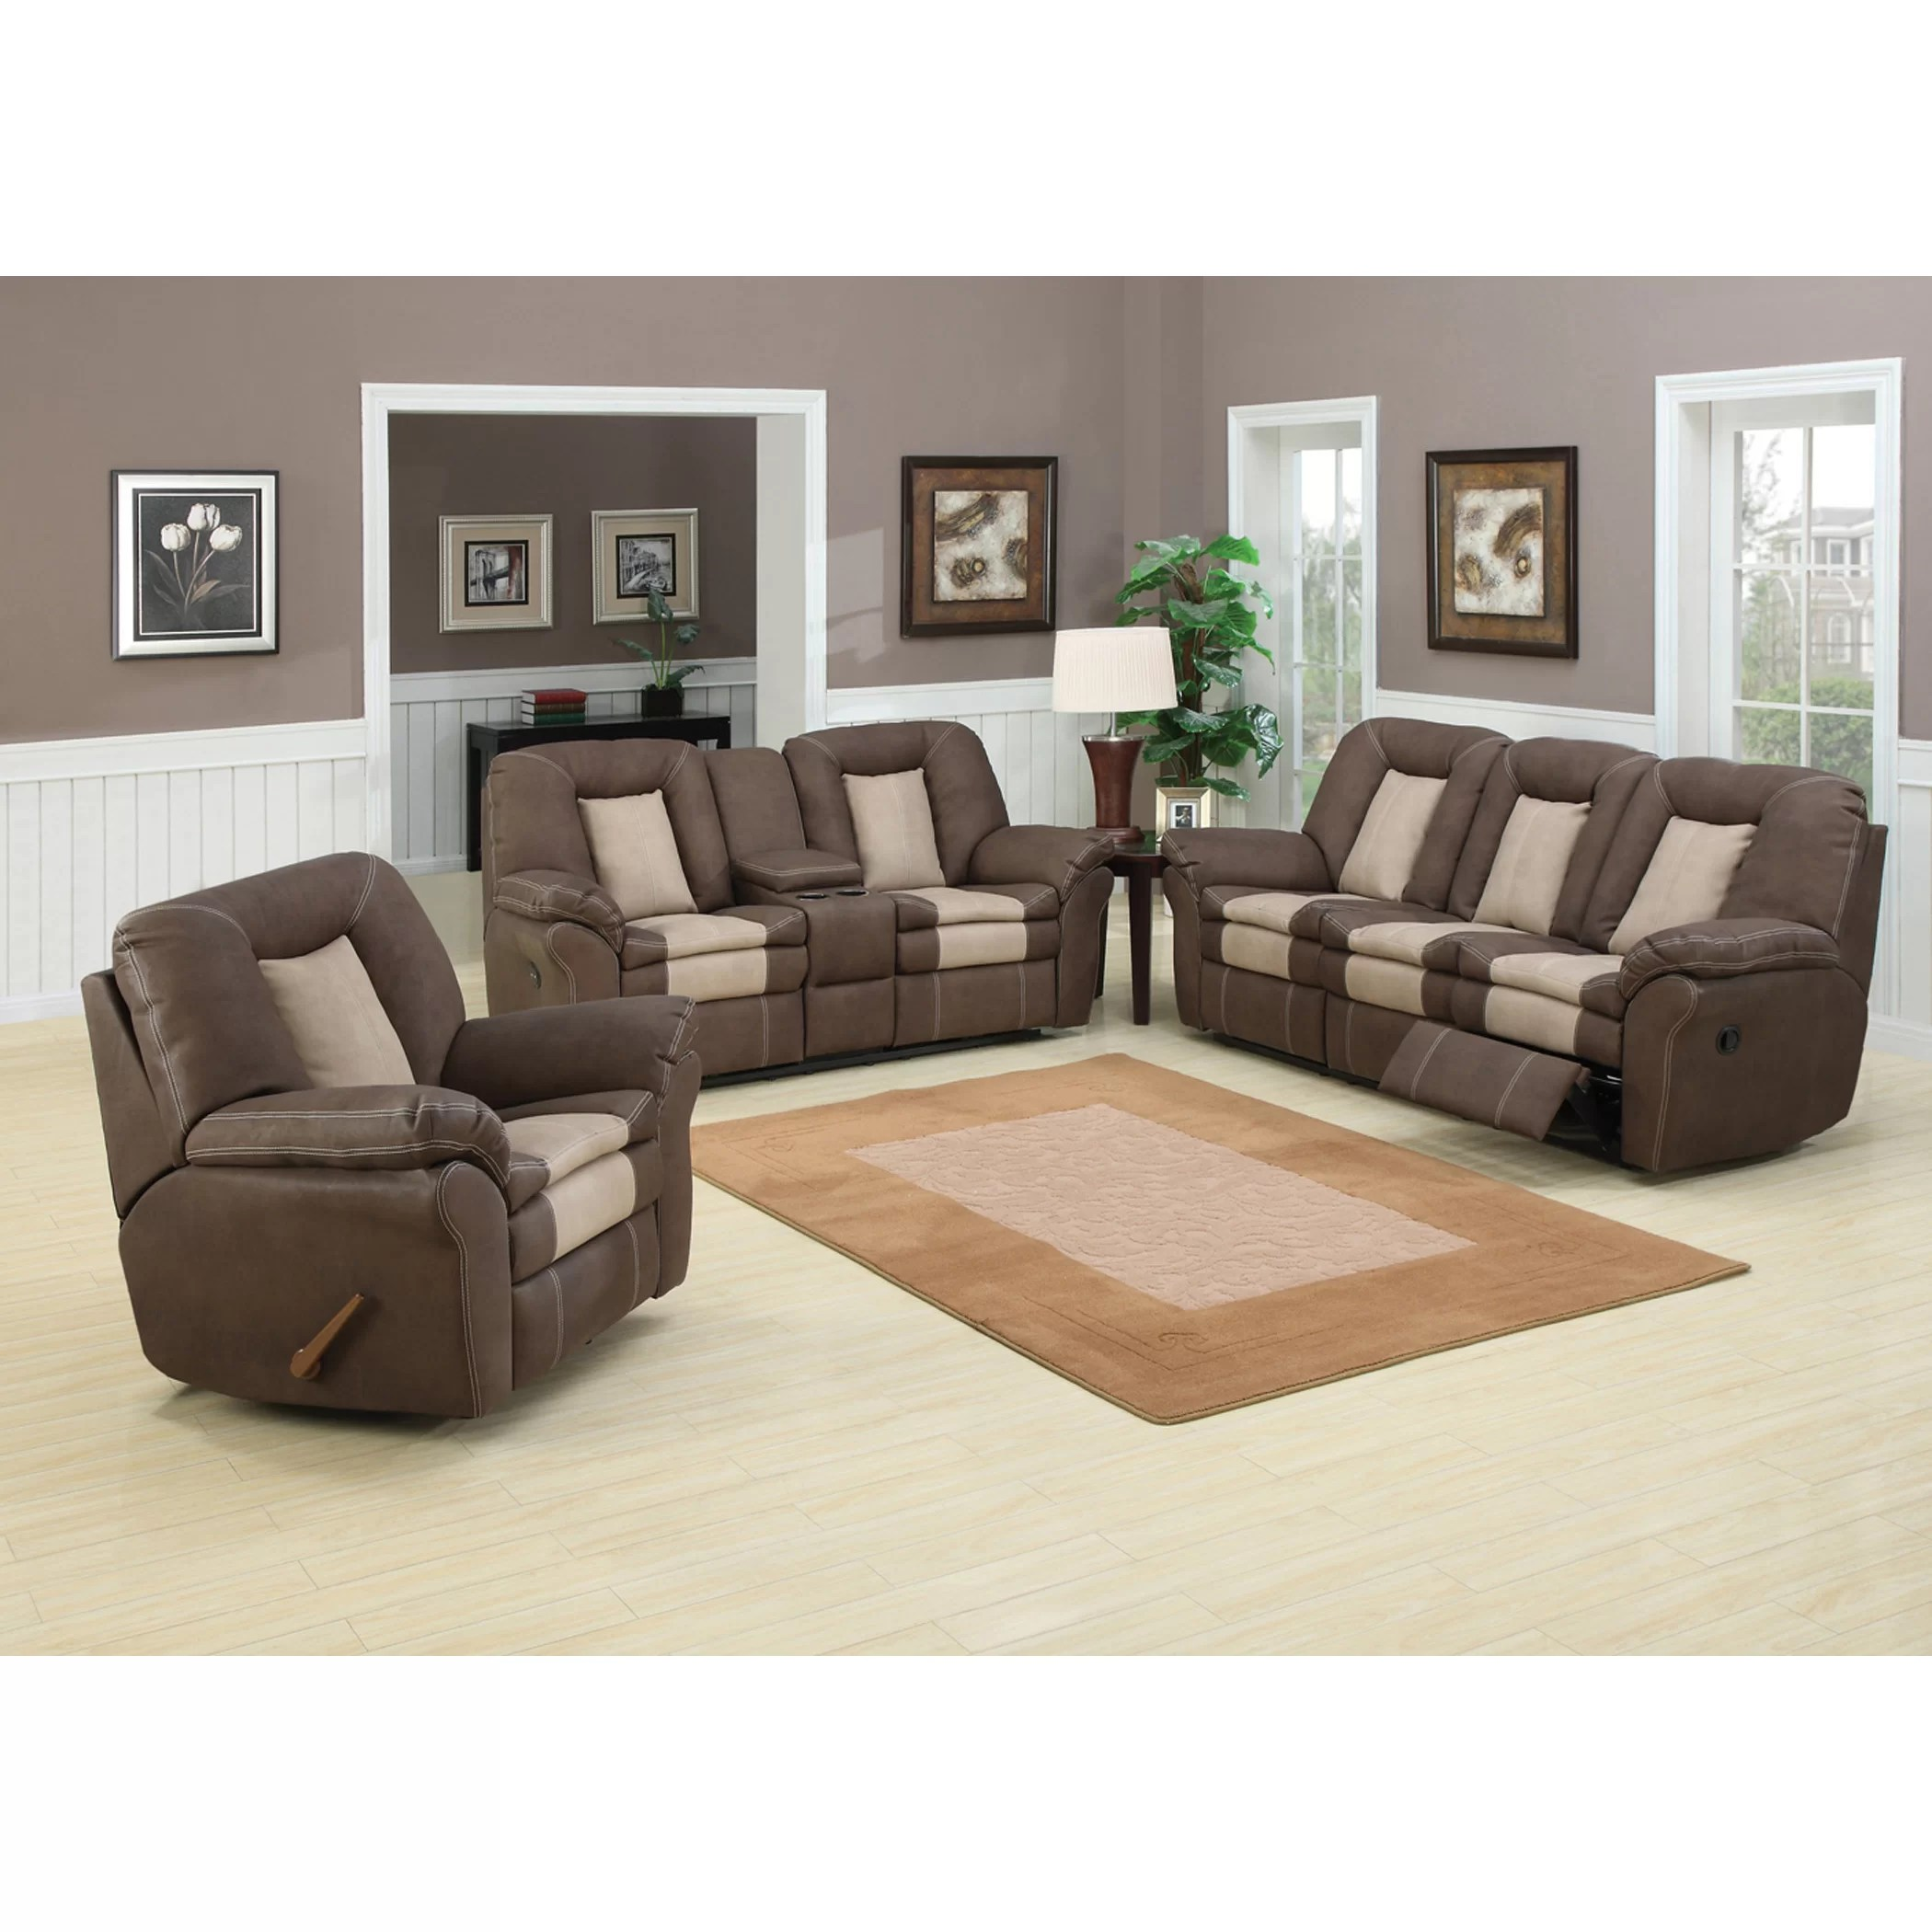 plush magnum sofa review pet covers with straps ac pacific carson living room dual reclining